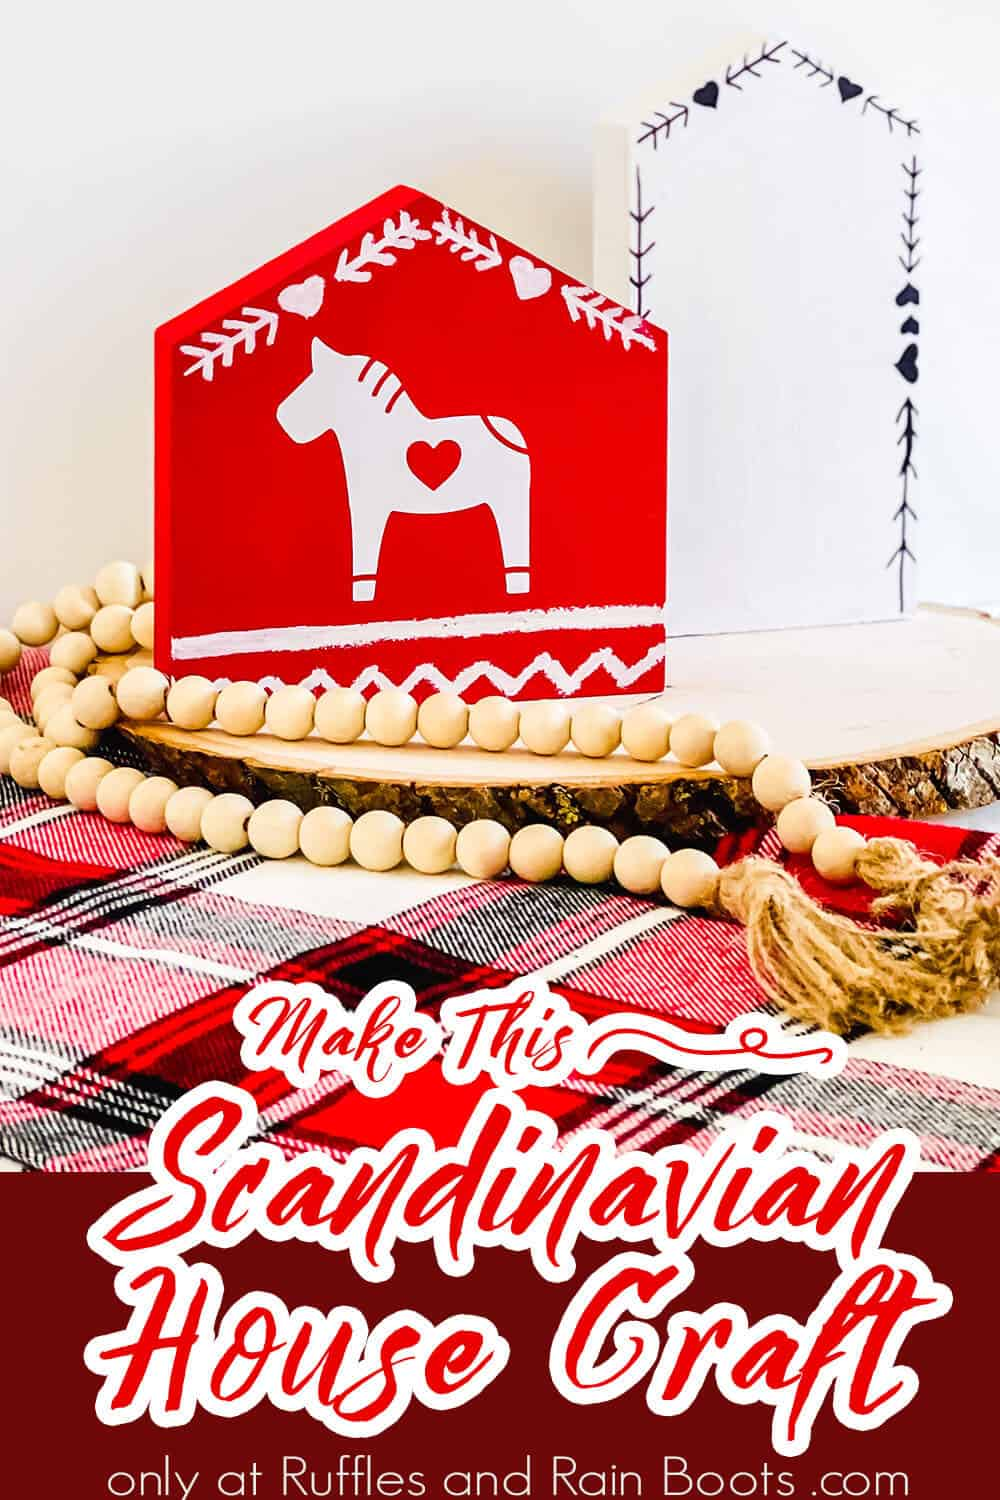 diy scandinavian tiered tray filler with text which reads make this scandinavian house craft